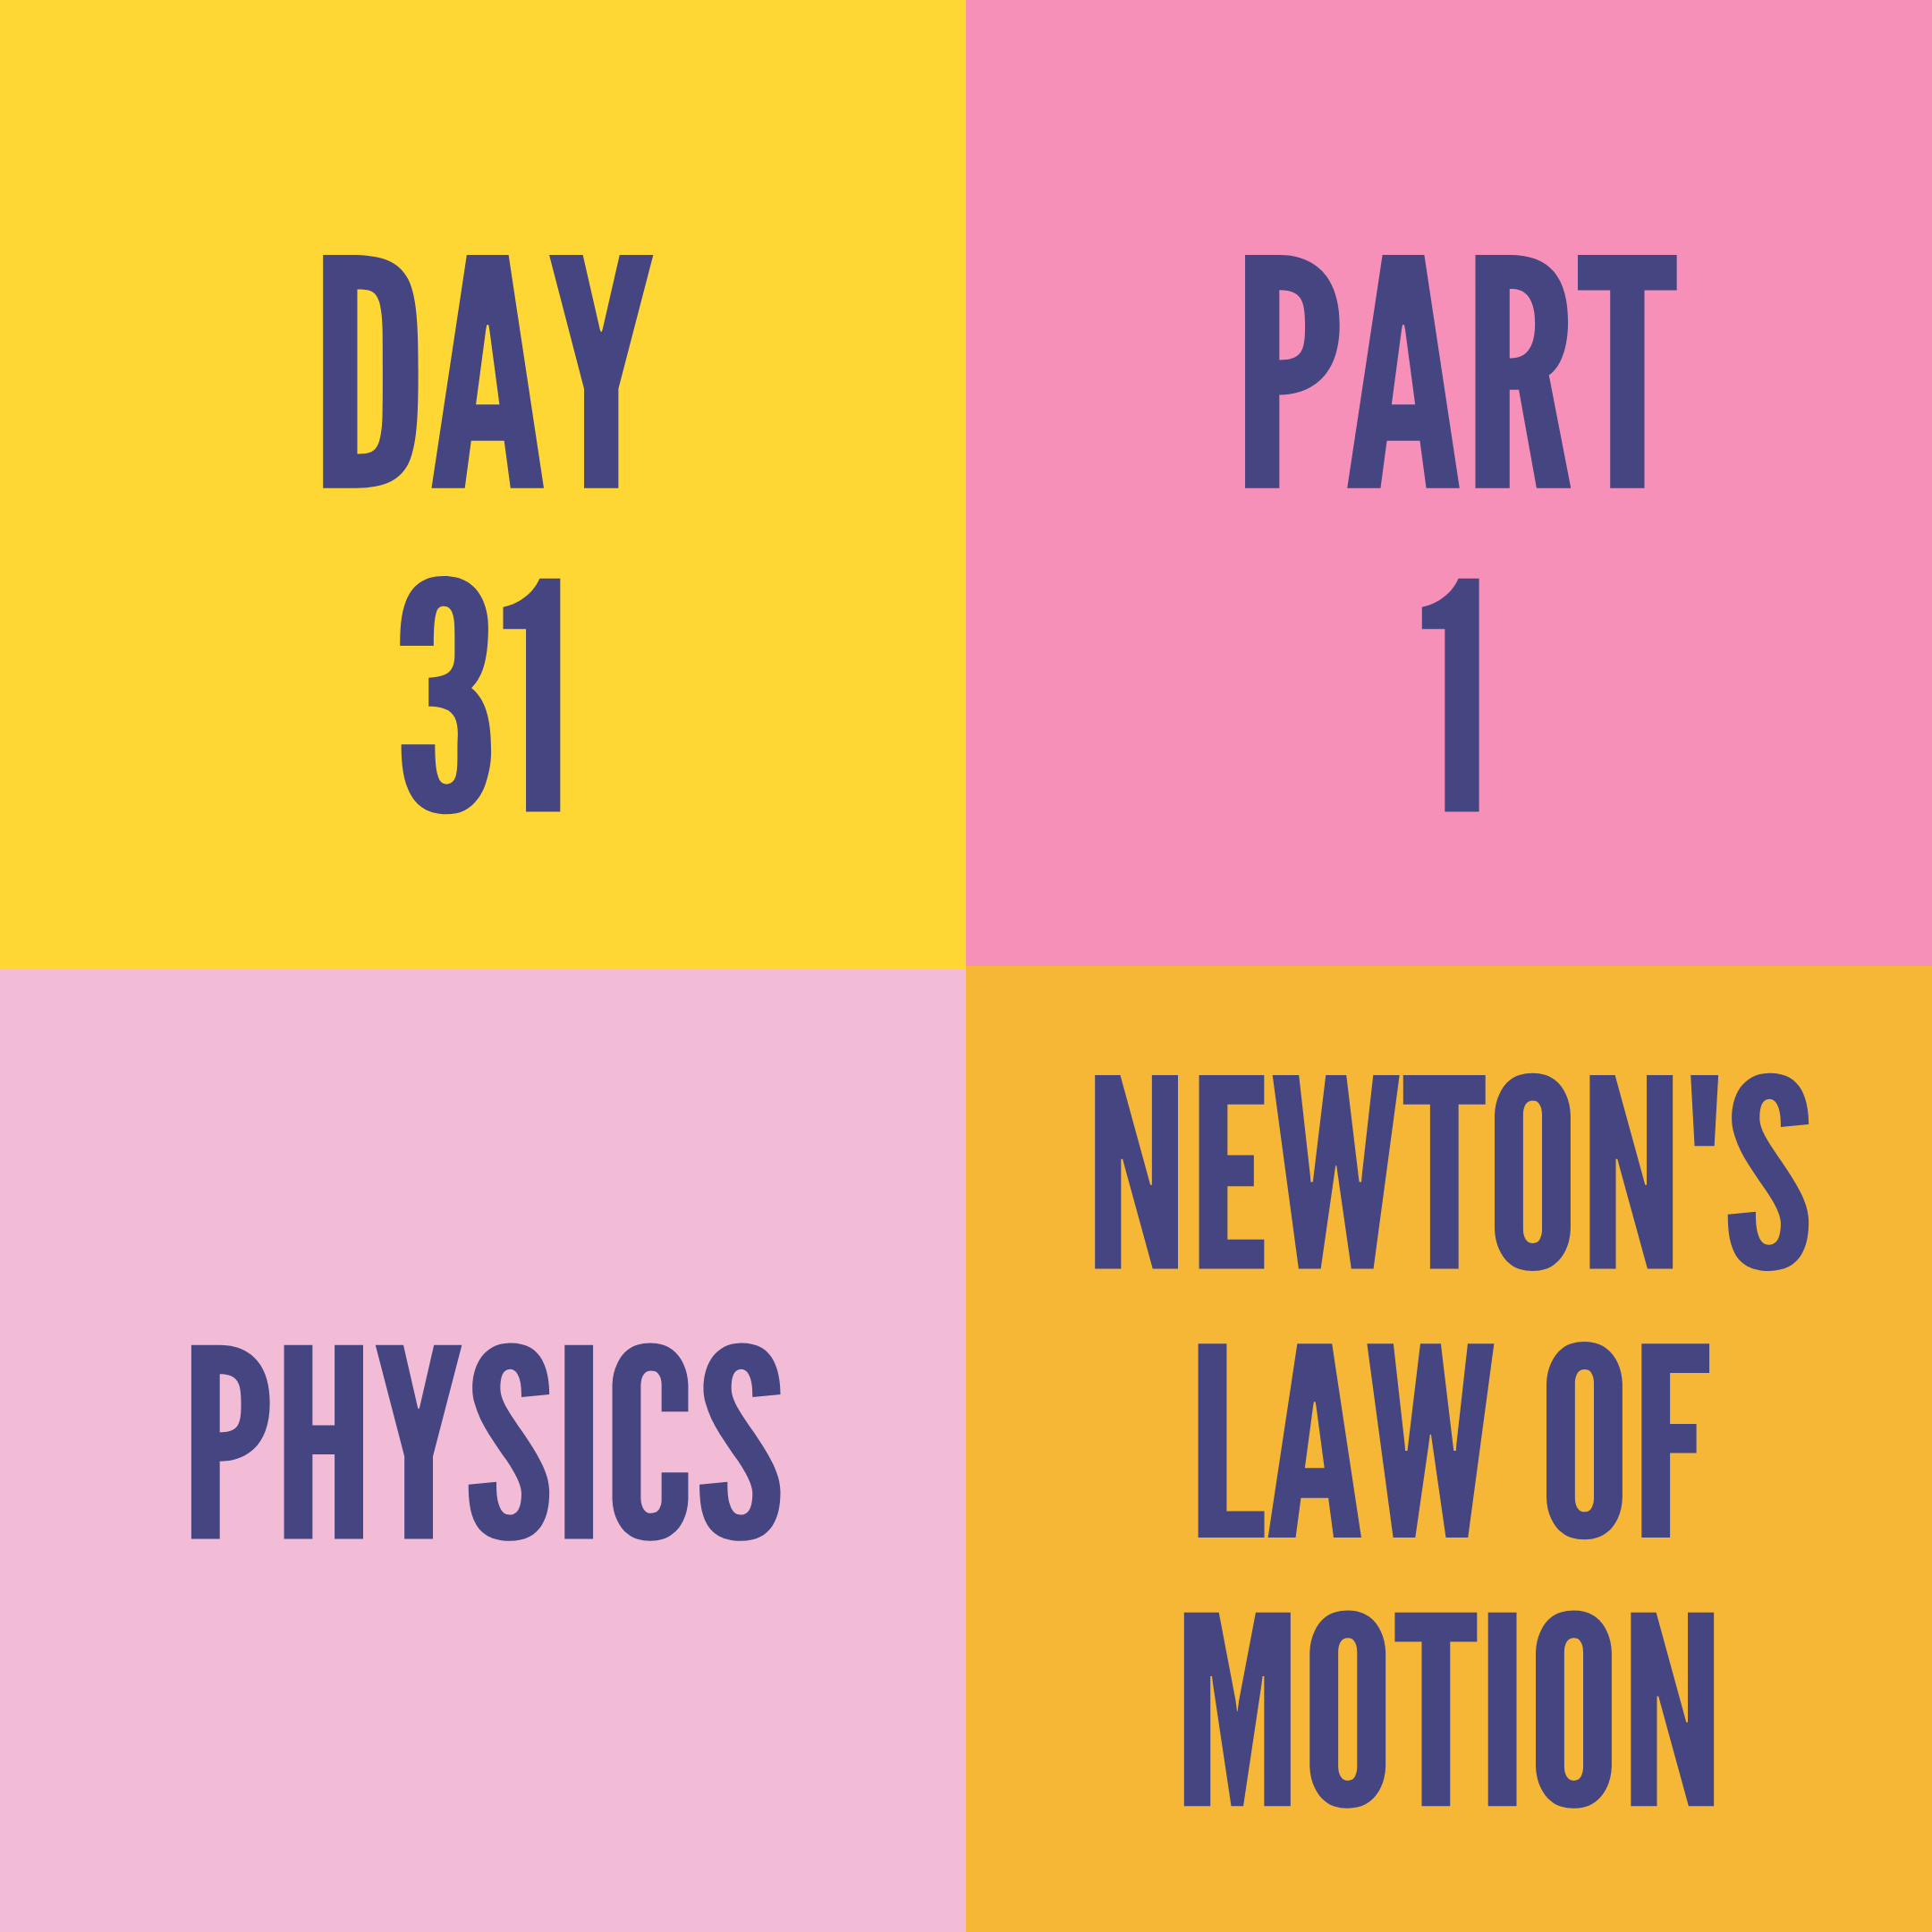 DAY-31 PART-1 NEWTON'S LAW OF MOTION